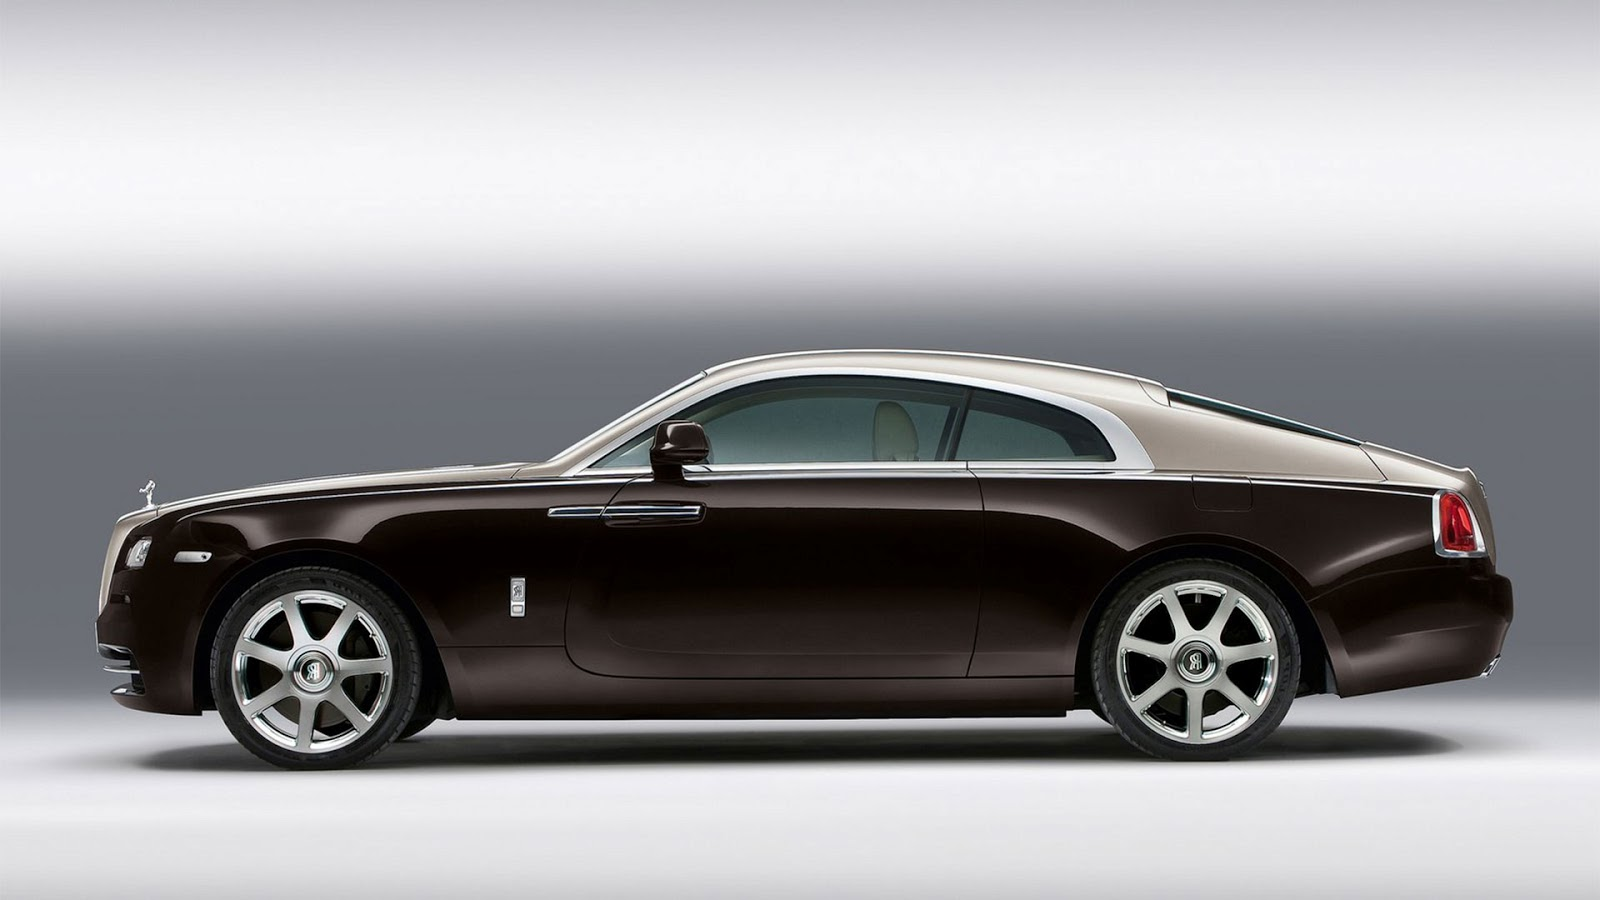 car bike fanatics exclusive new pictures of the rolls royce wraith. Black Bedroom Furniture Sets. Home Design Ideas